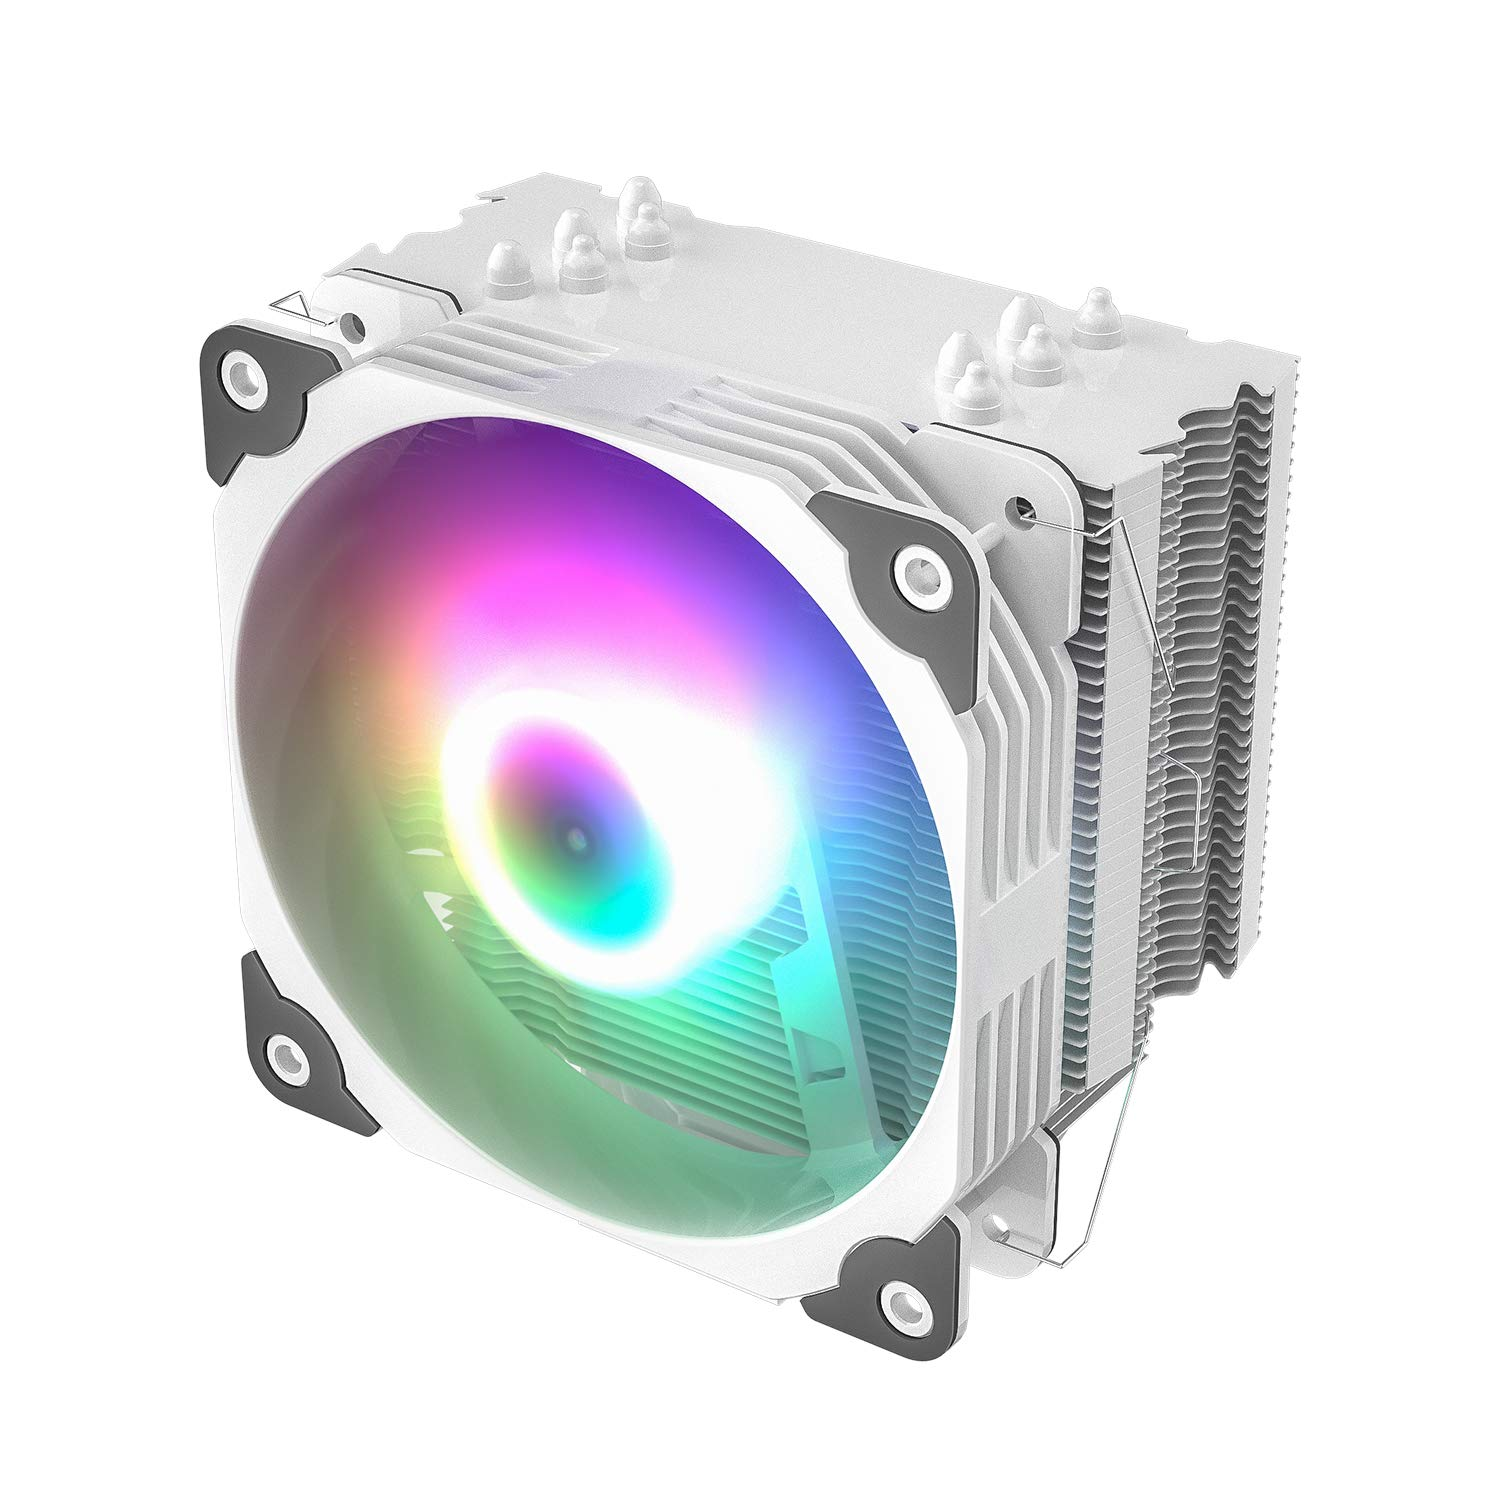 Vetroo V5 White CPU Air Cooler W/ 5 Heat Pipes 120mm PWM Pro